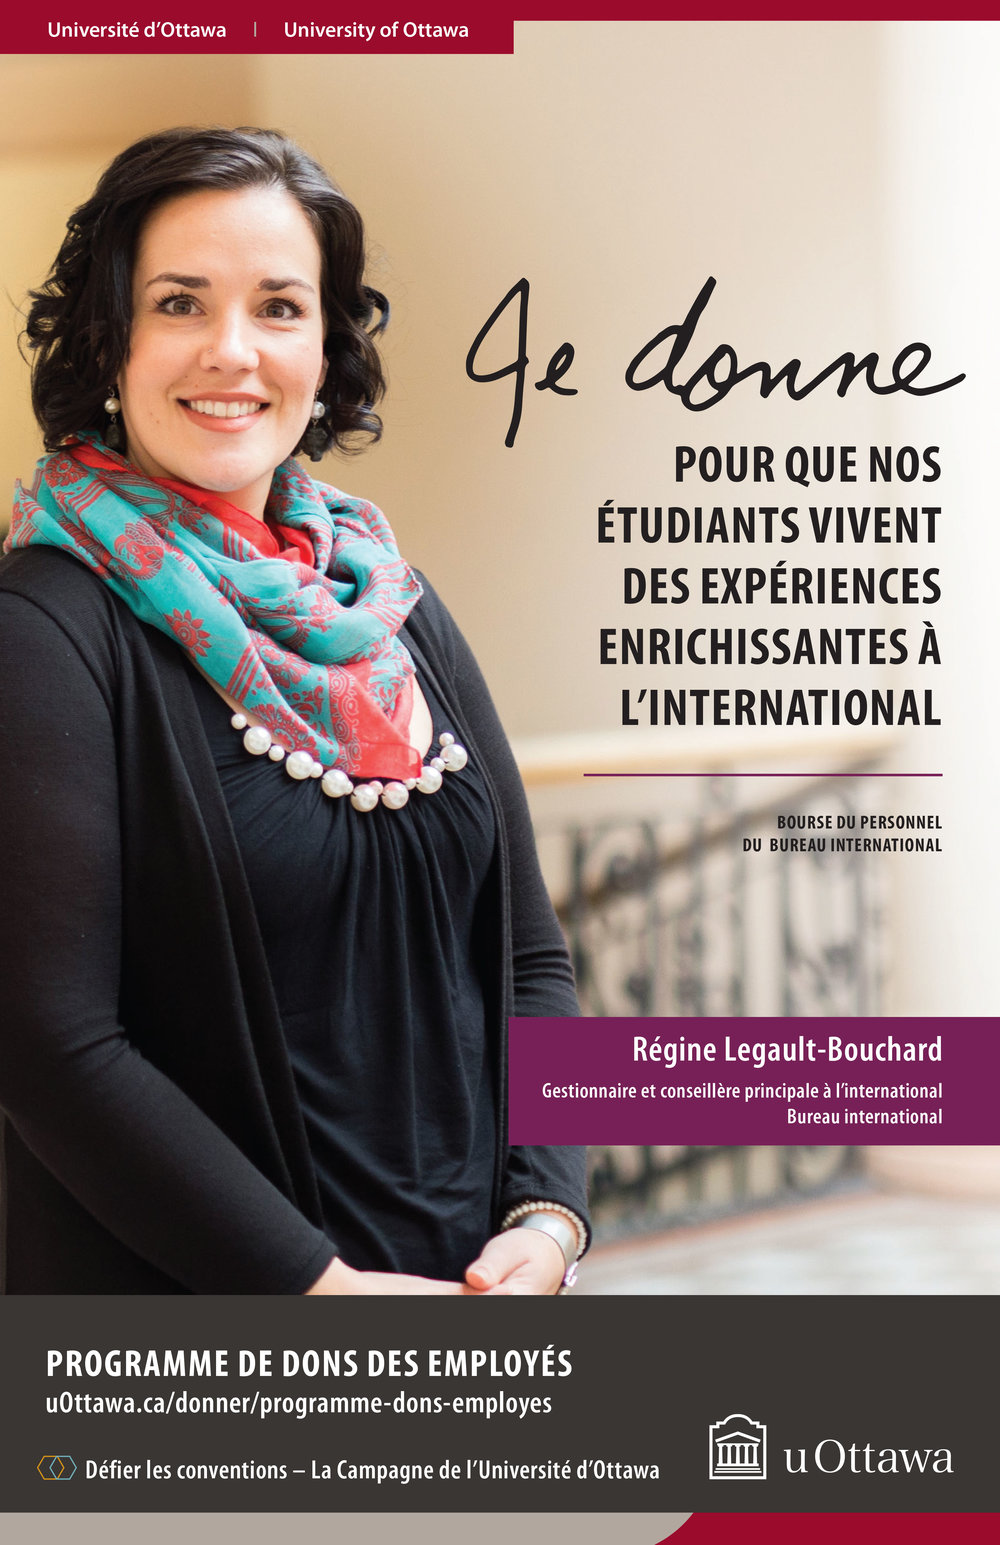 DEVT15_252_EmployeeGiving2016_Posters_FR_FINAL_PRINT_nocrop_Regine.jpg